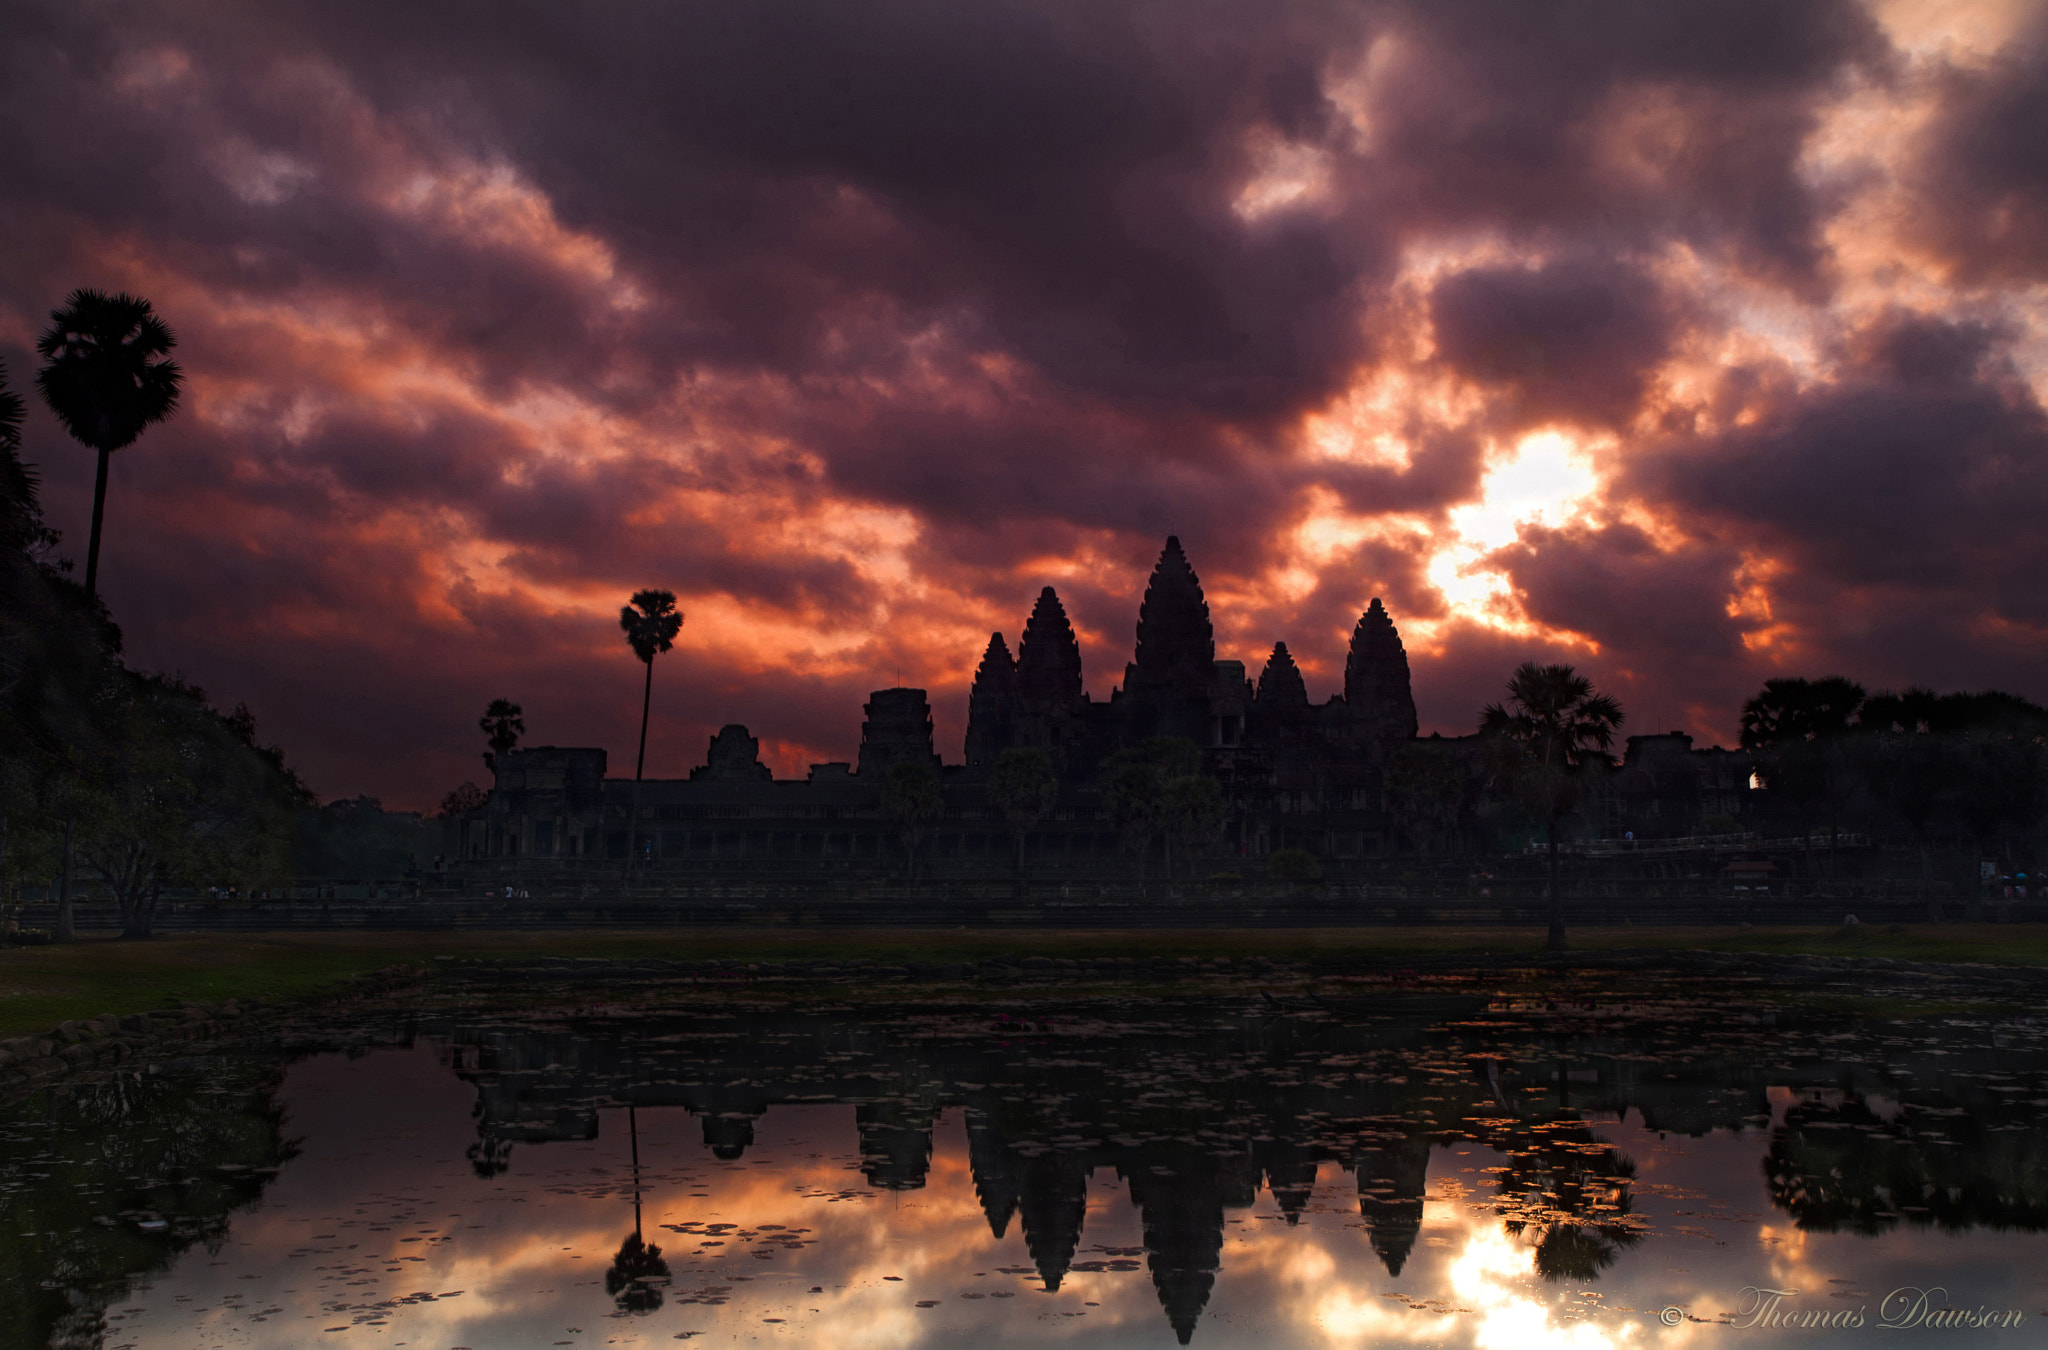 Photograph Sunrise of the Ancients by Thomas Dawson on 500px